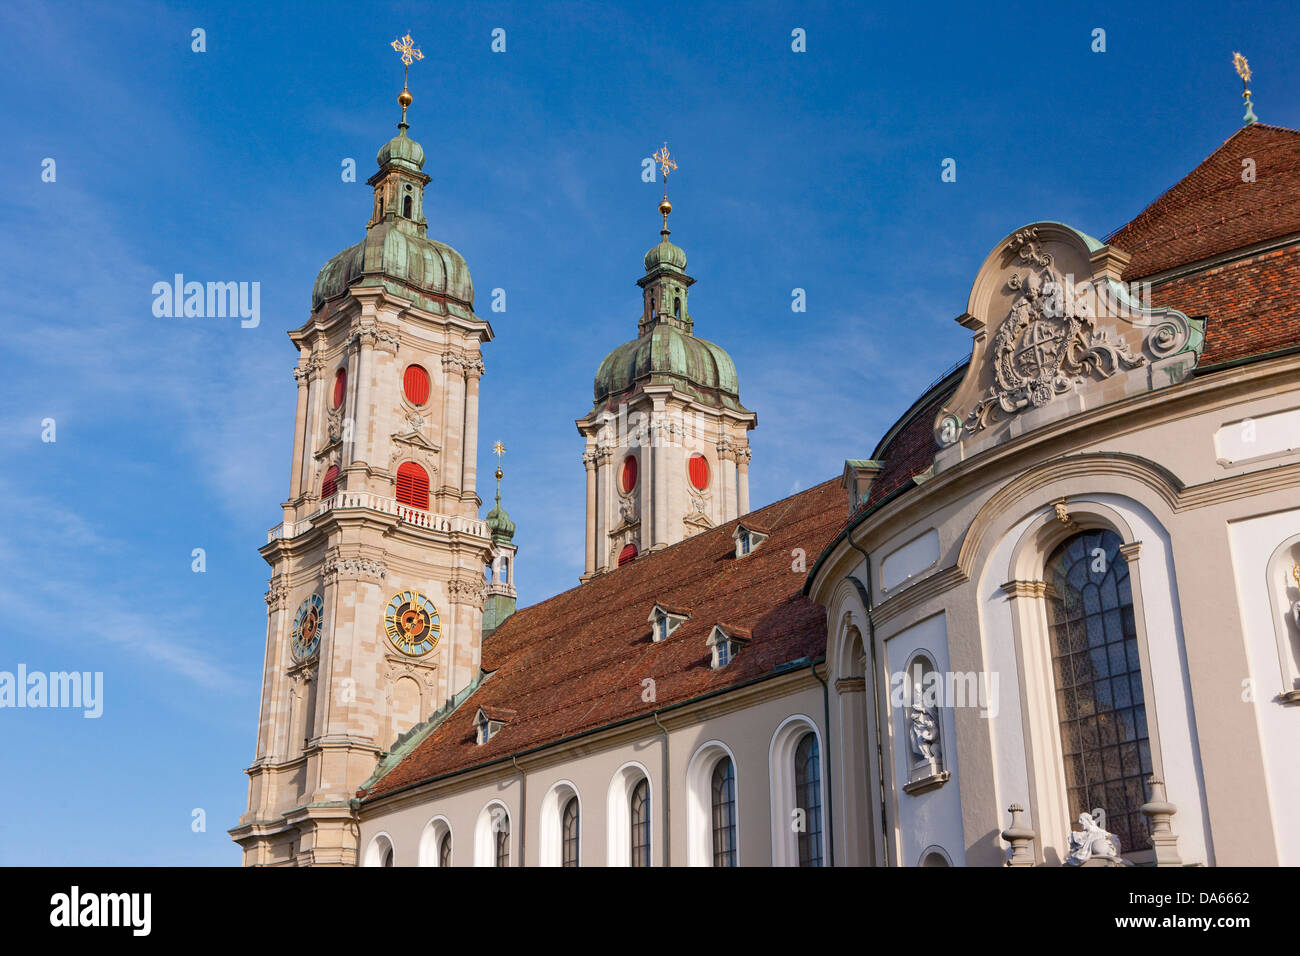 Cloître, Saint-Gall, église, religion, village, ville, canton, SG, Saint-Gall, Suisse, Europe, clochers Photo Stock